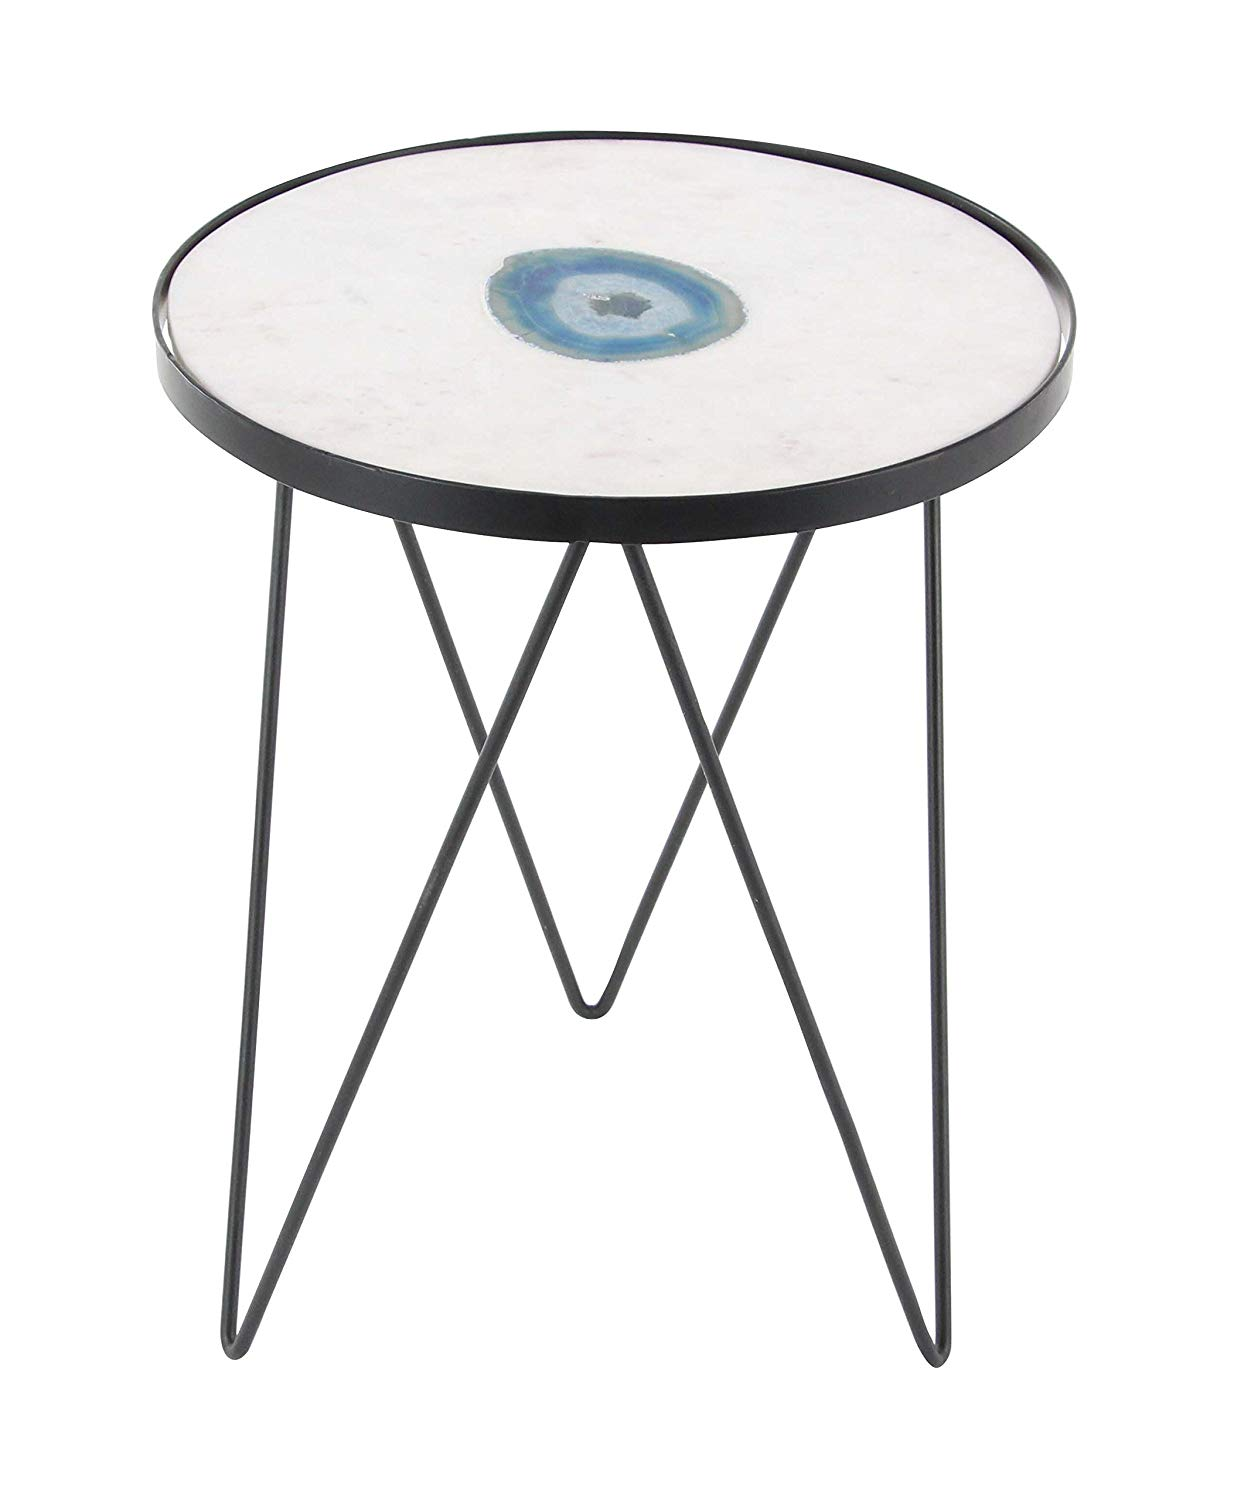 charming white marble and metal round accent table small for faux tablecloth pedestal wooden unfinished wood ideas covers decorating threshold side full size centerpieces glass